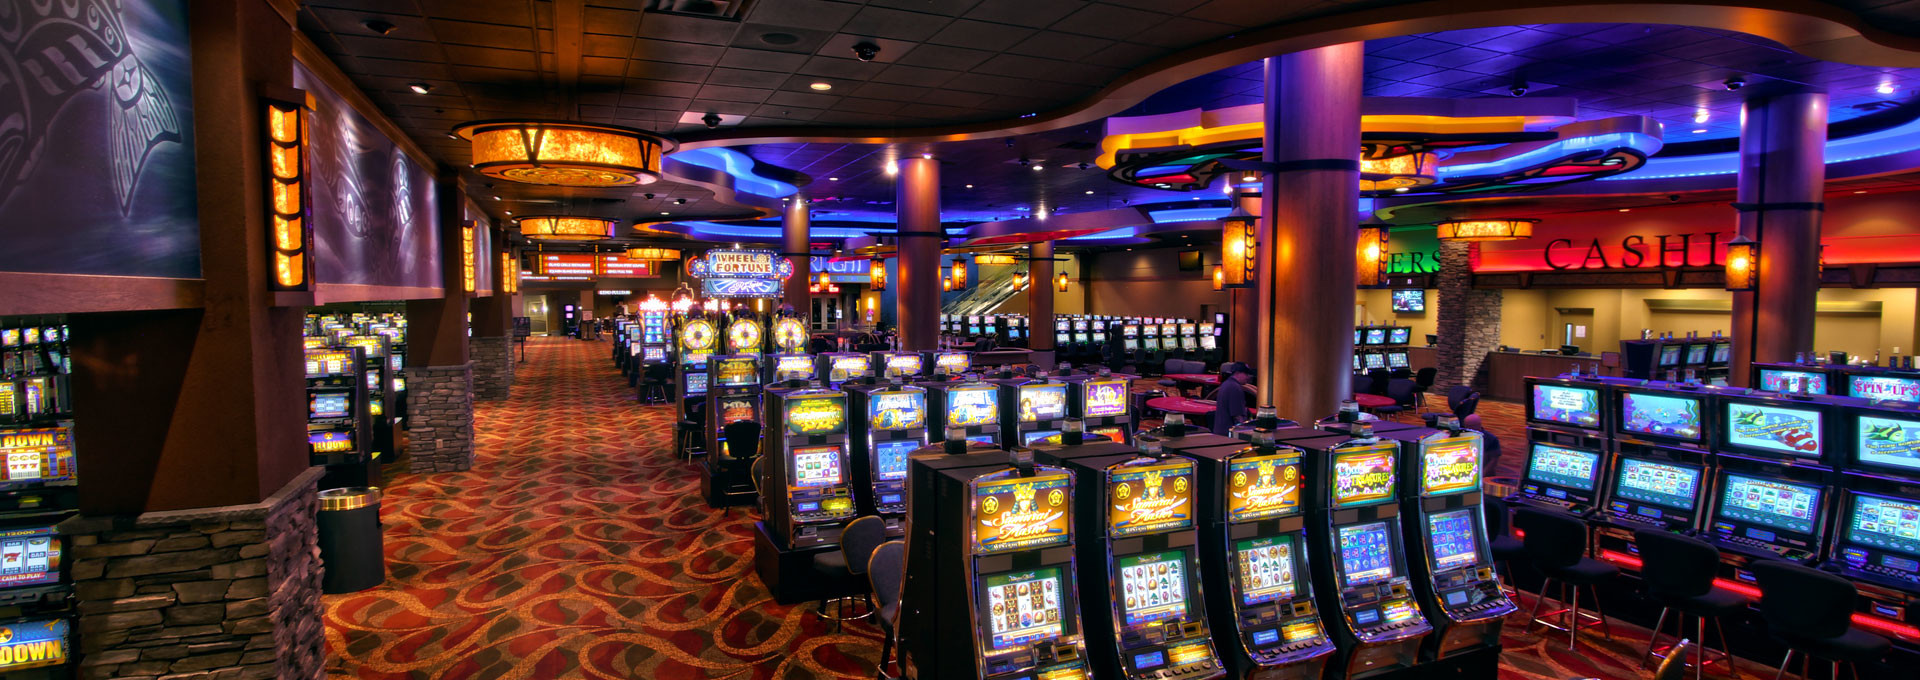 Little-Creek-Casino_Interior-Casino-Design_Casino-Development-1920x680